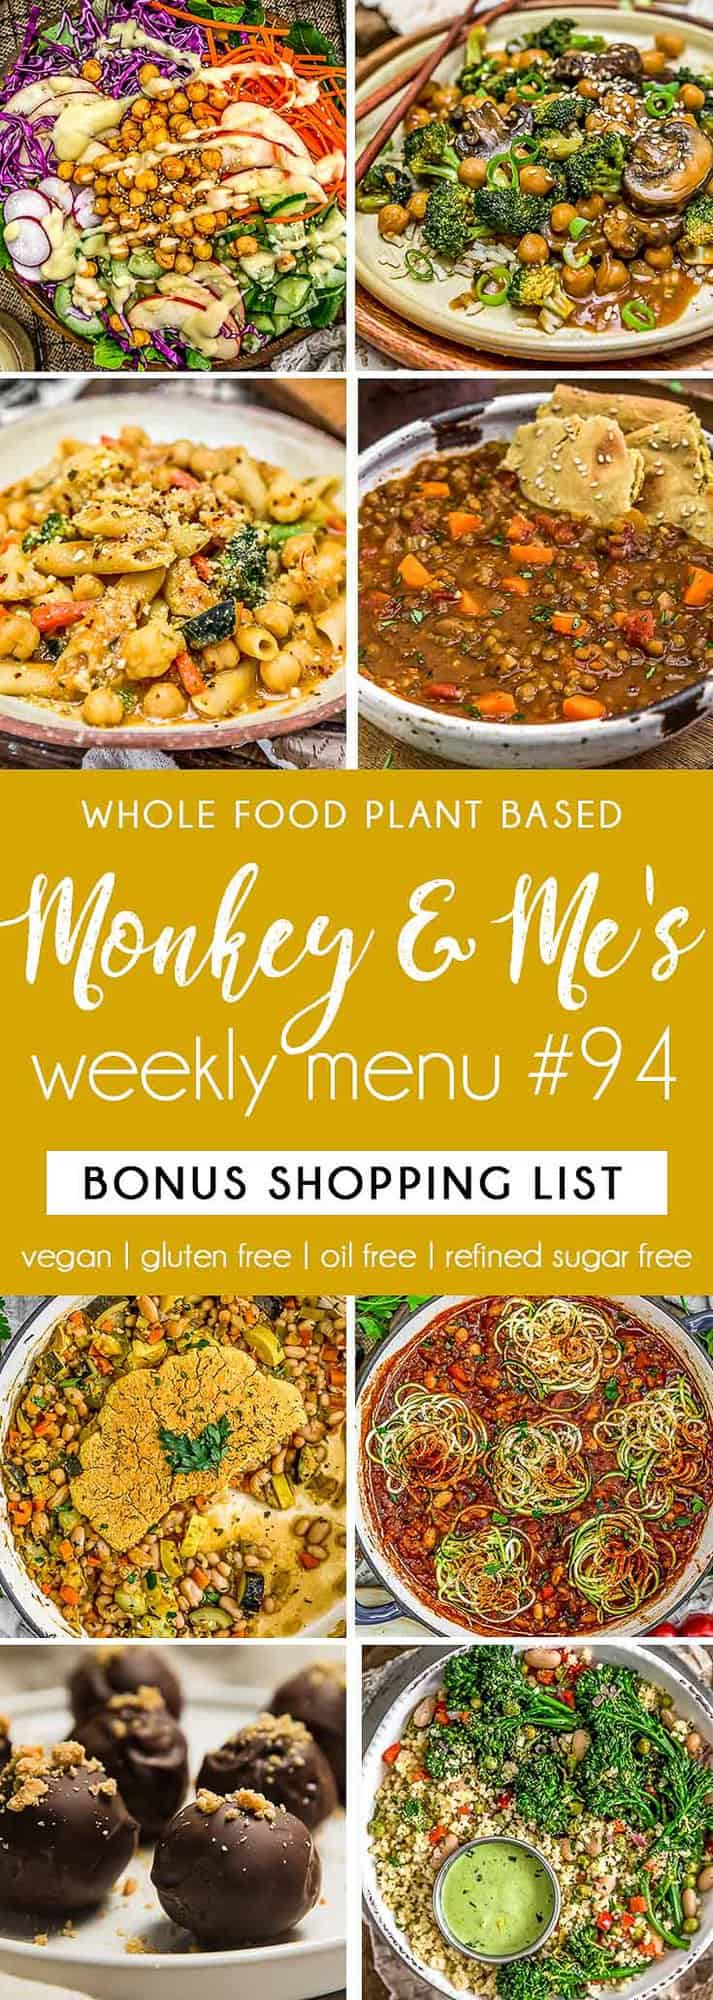 Monkey and Me's Menu 94 featuring 8 recipes